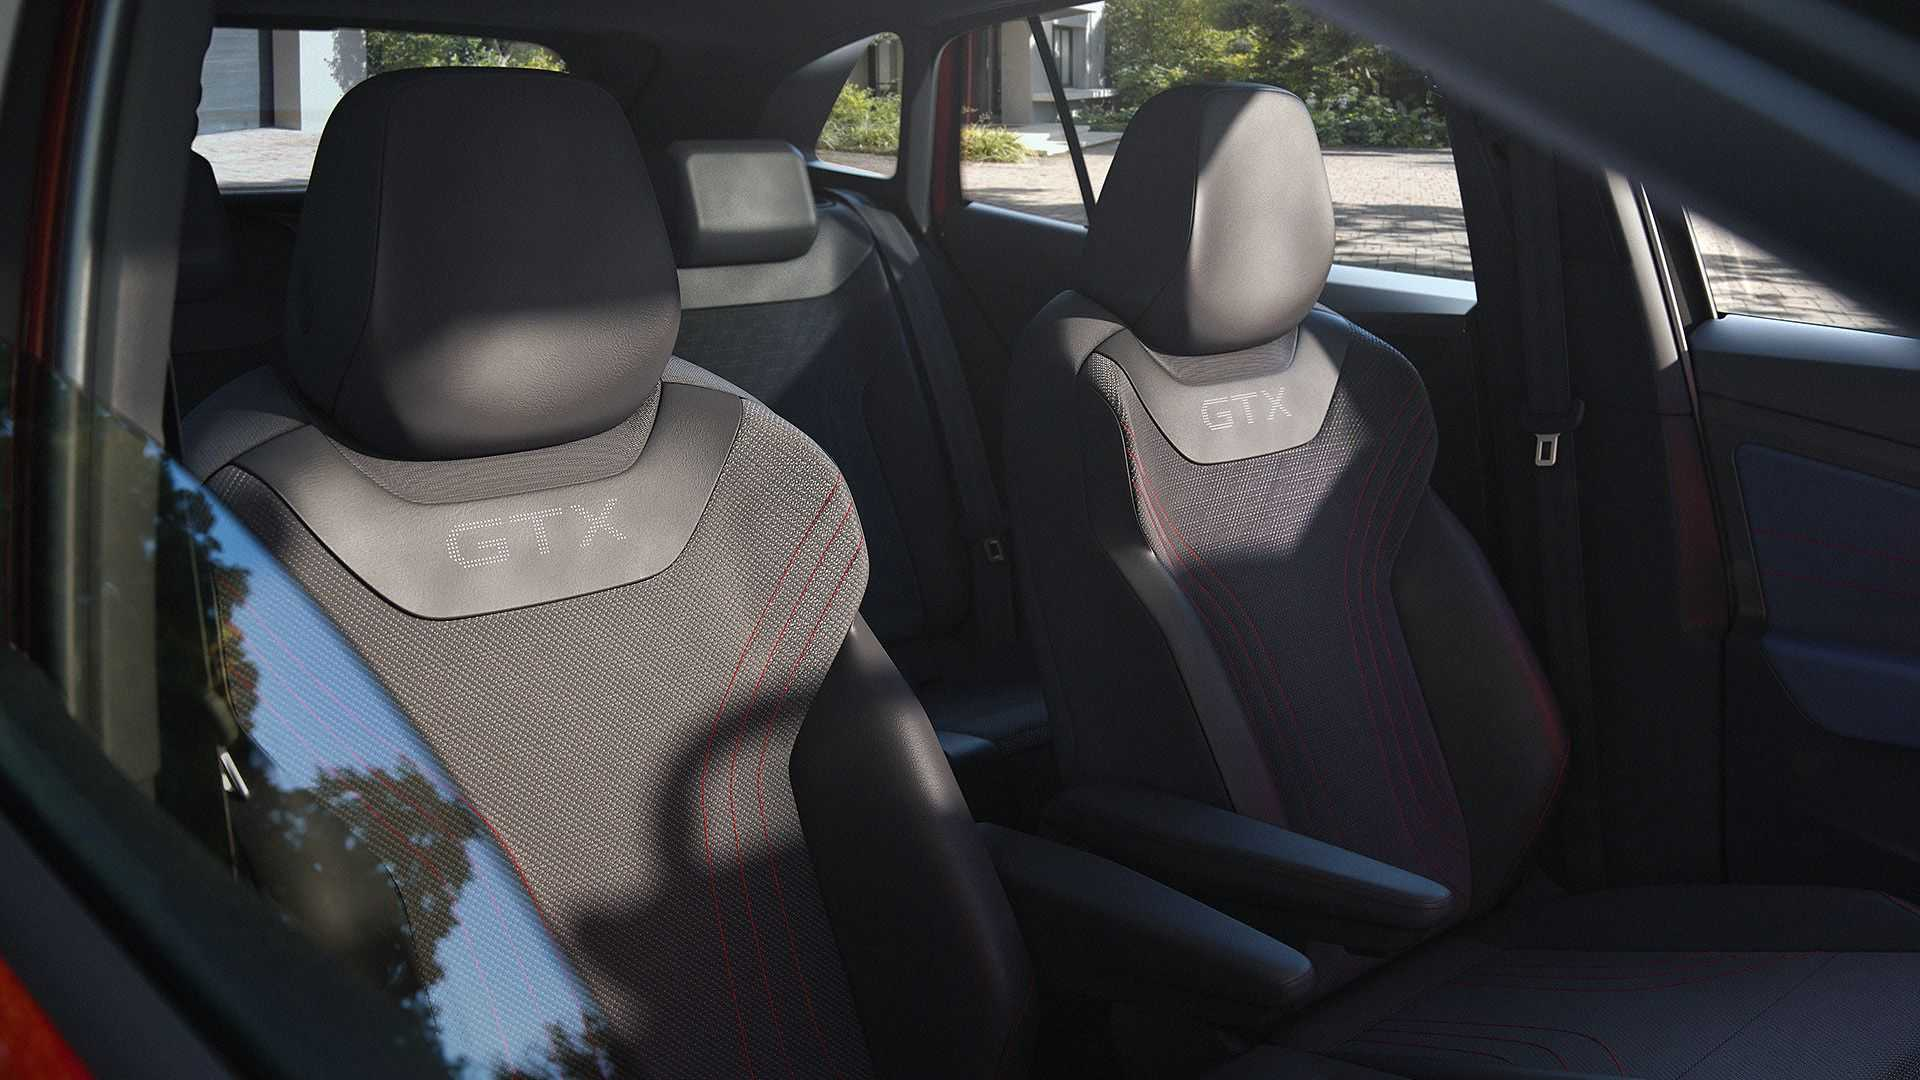 The sporty seats get a comfortable posture, individual arm rests and GTX badging along with the contrast stitching.